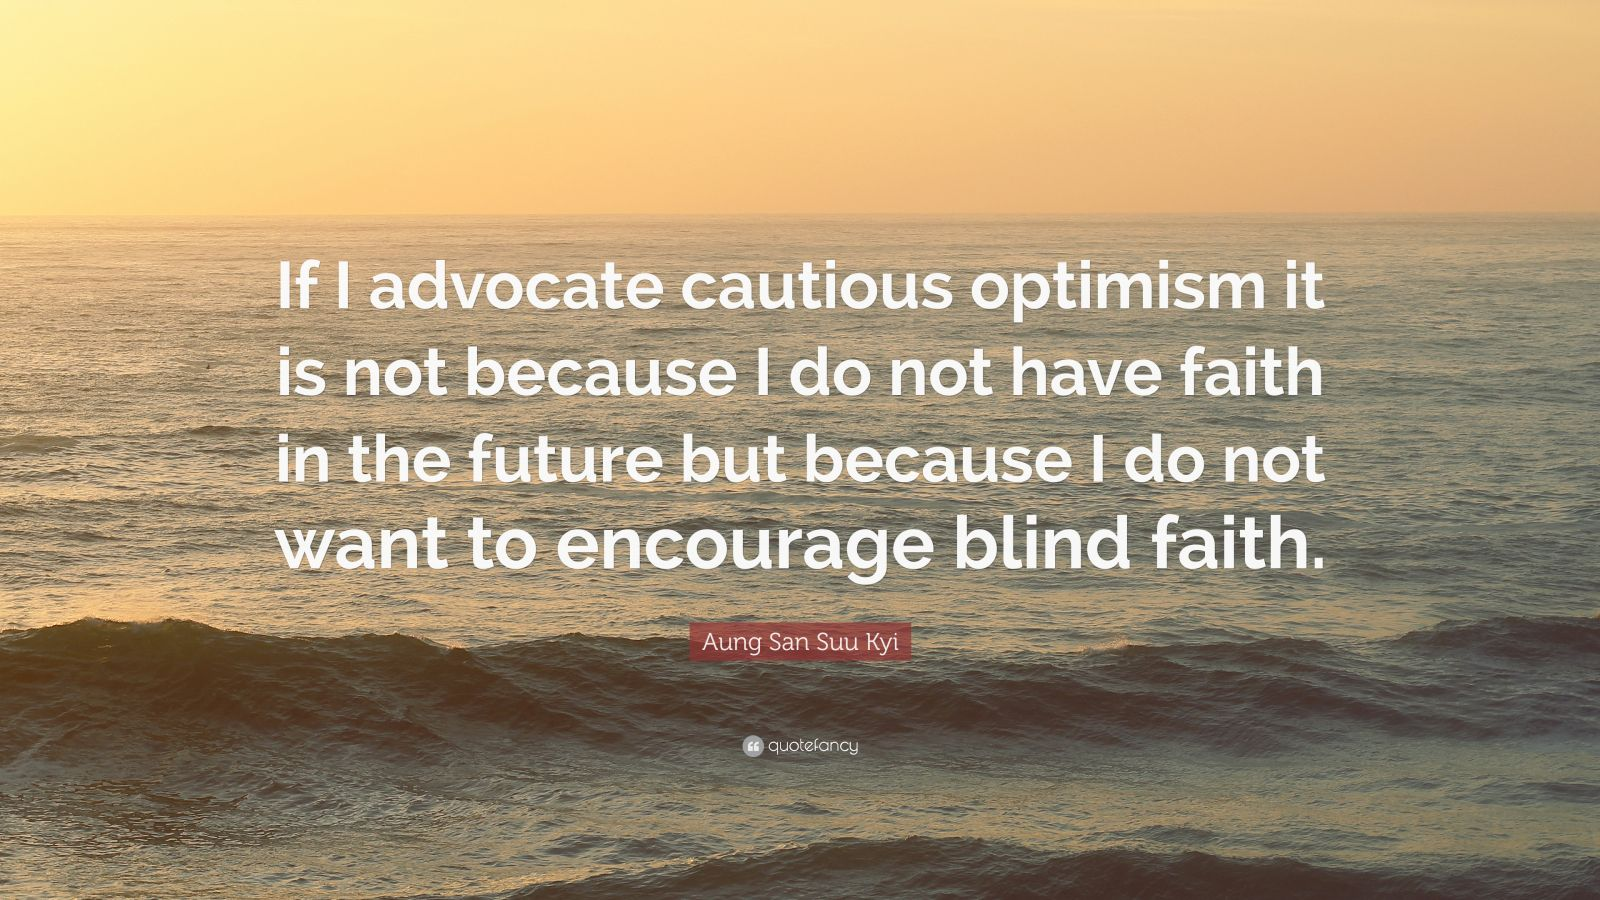 """Aung San Suu Kyi Quote: """"If I advocate cautious optimism it is not because I do not have faith in the future but because I do not want to encourage blind faith."""""""